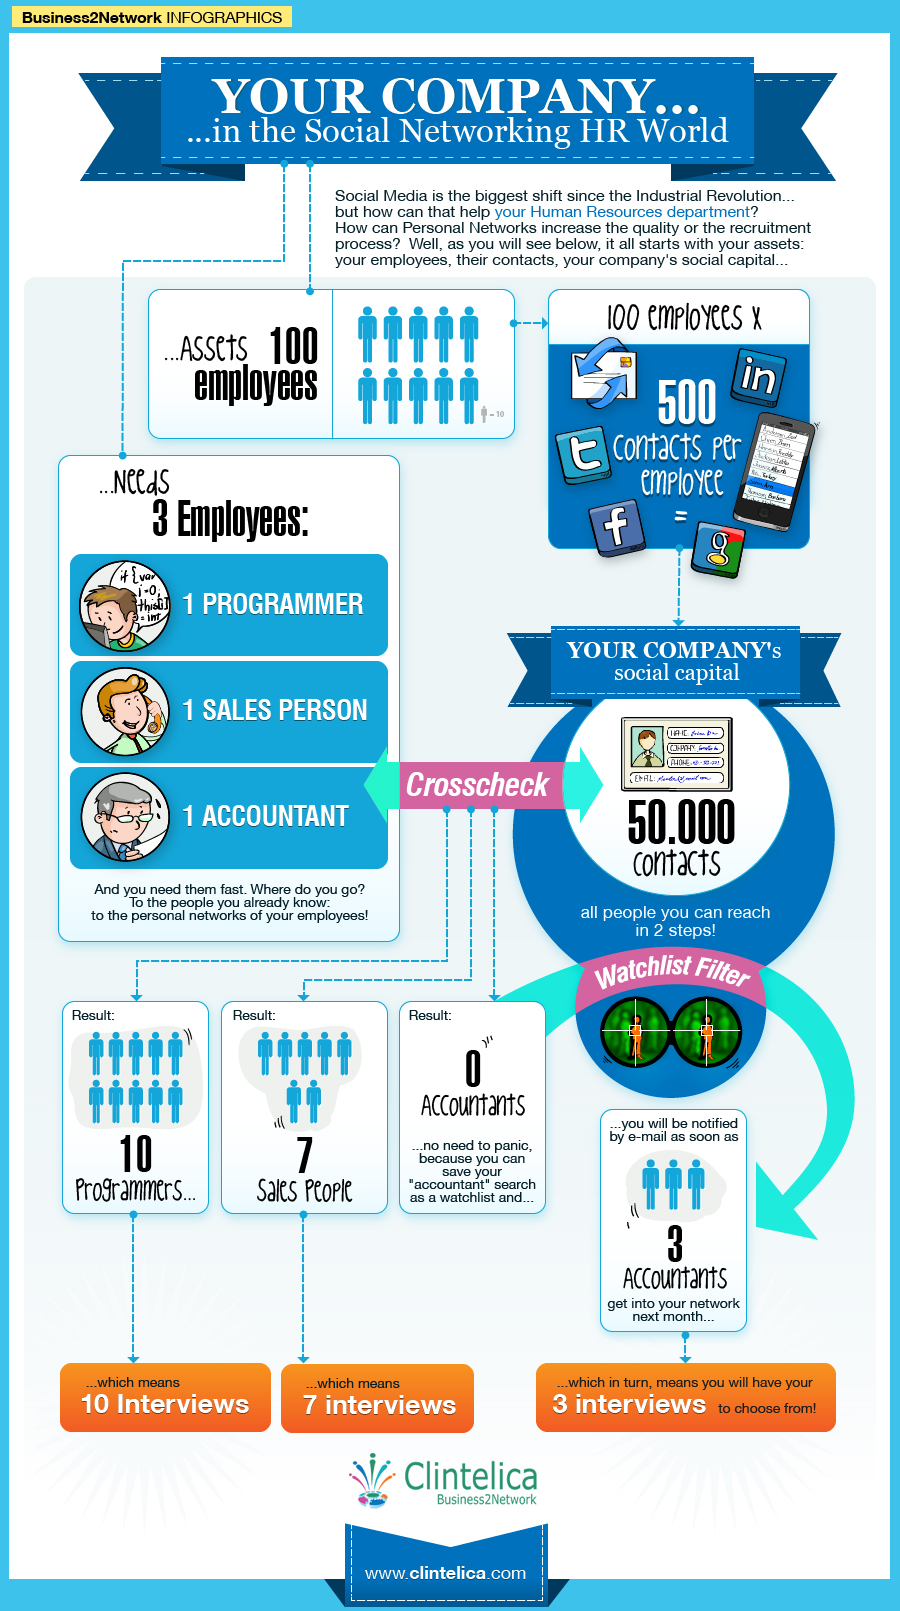 Your Company In The Social Networking HR World [INFOGRAPHIC